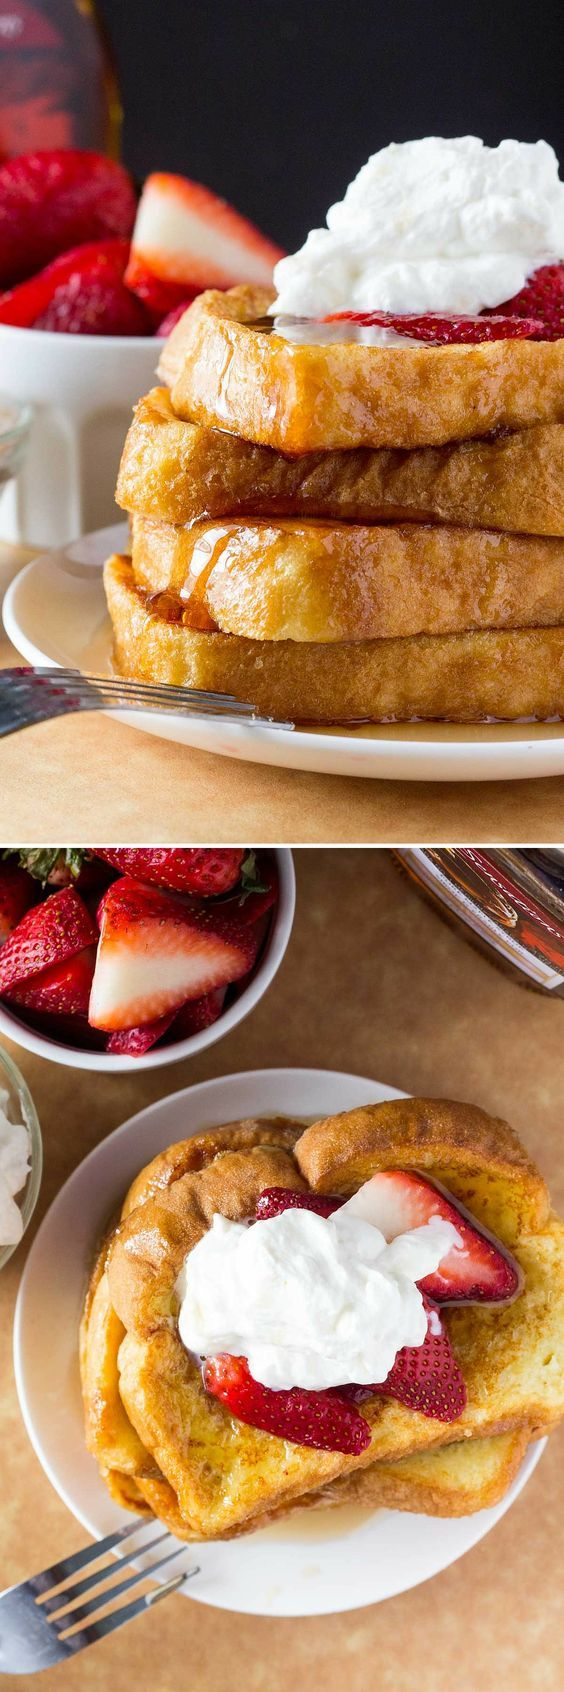 The Best French Toast  Fluffy, Buttery, Golden Brown, Topped With Maple  Syrup